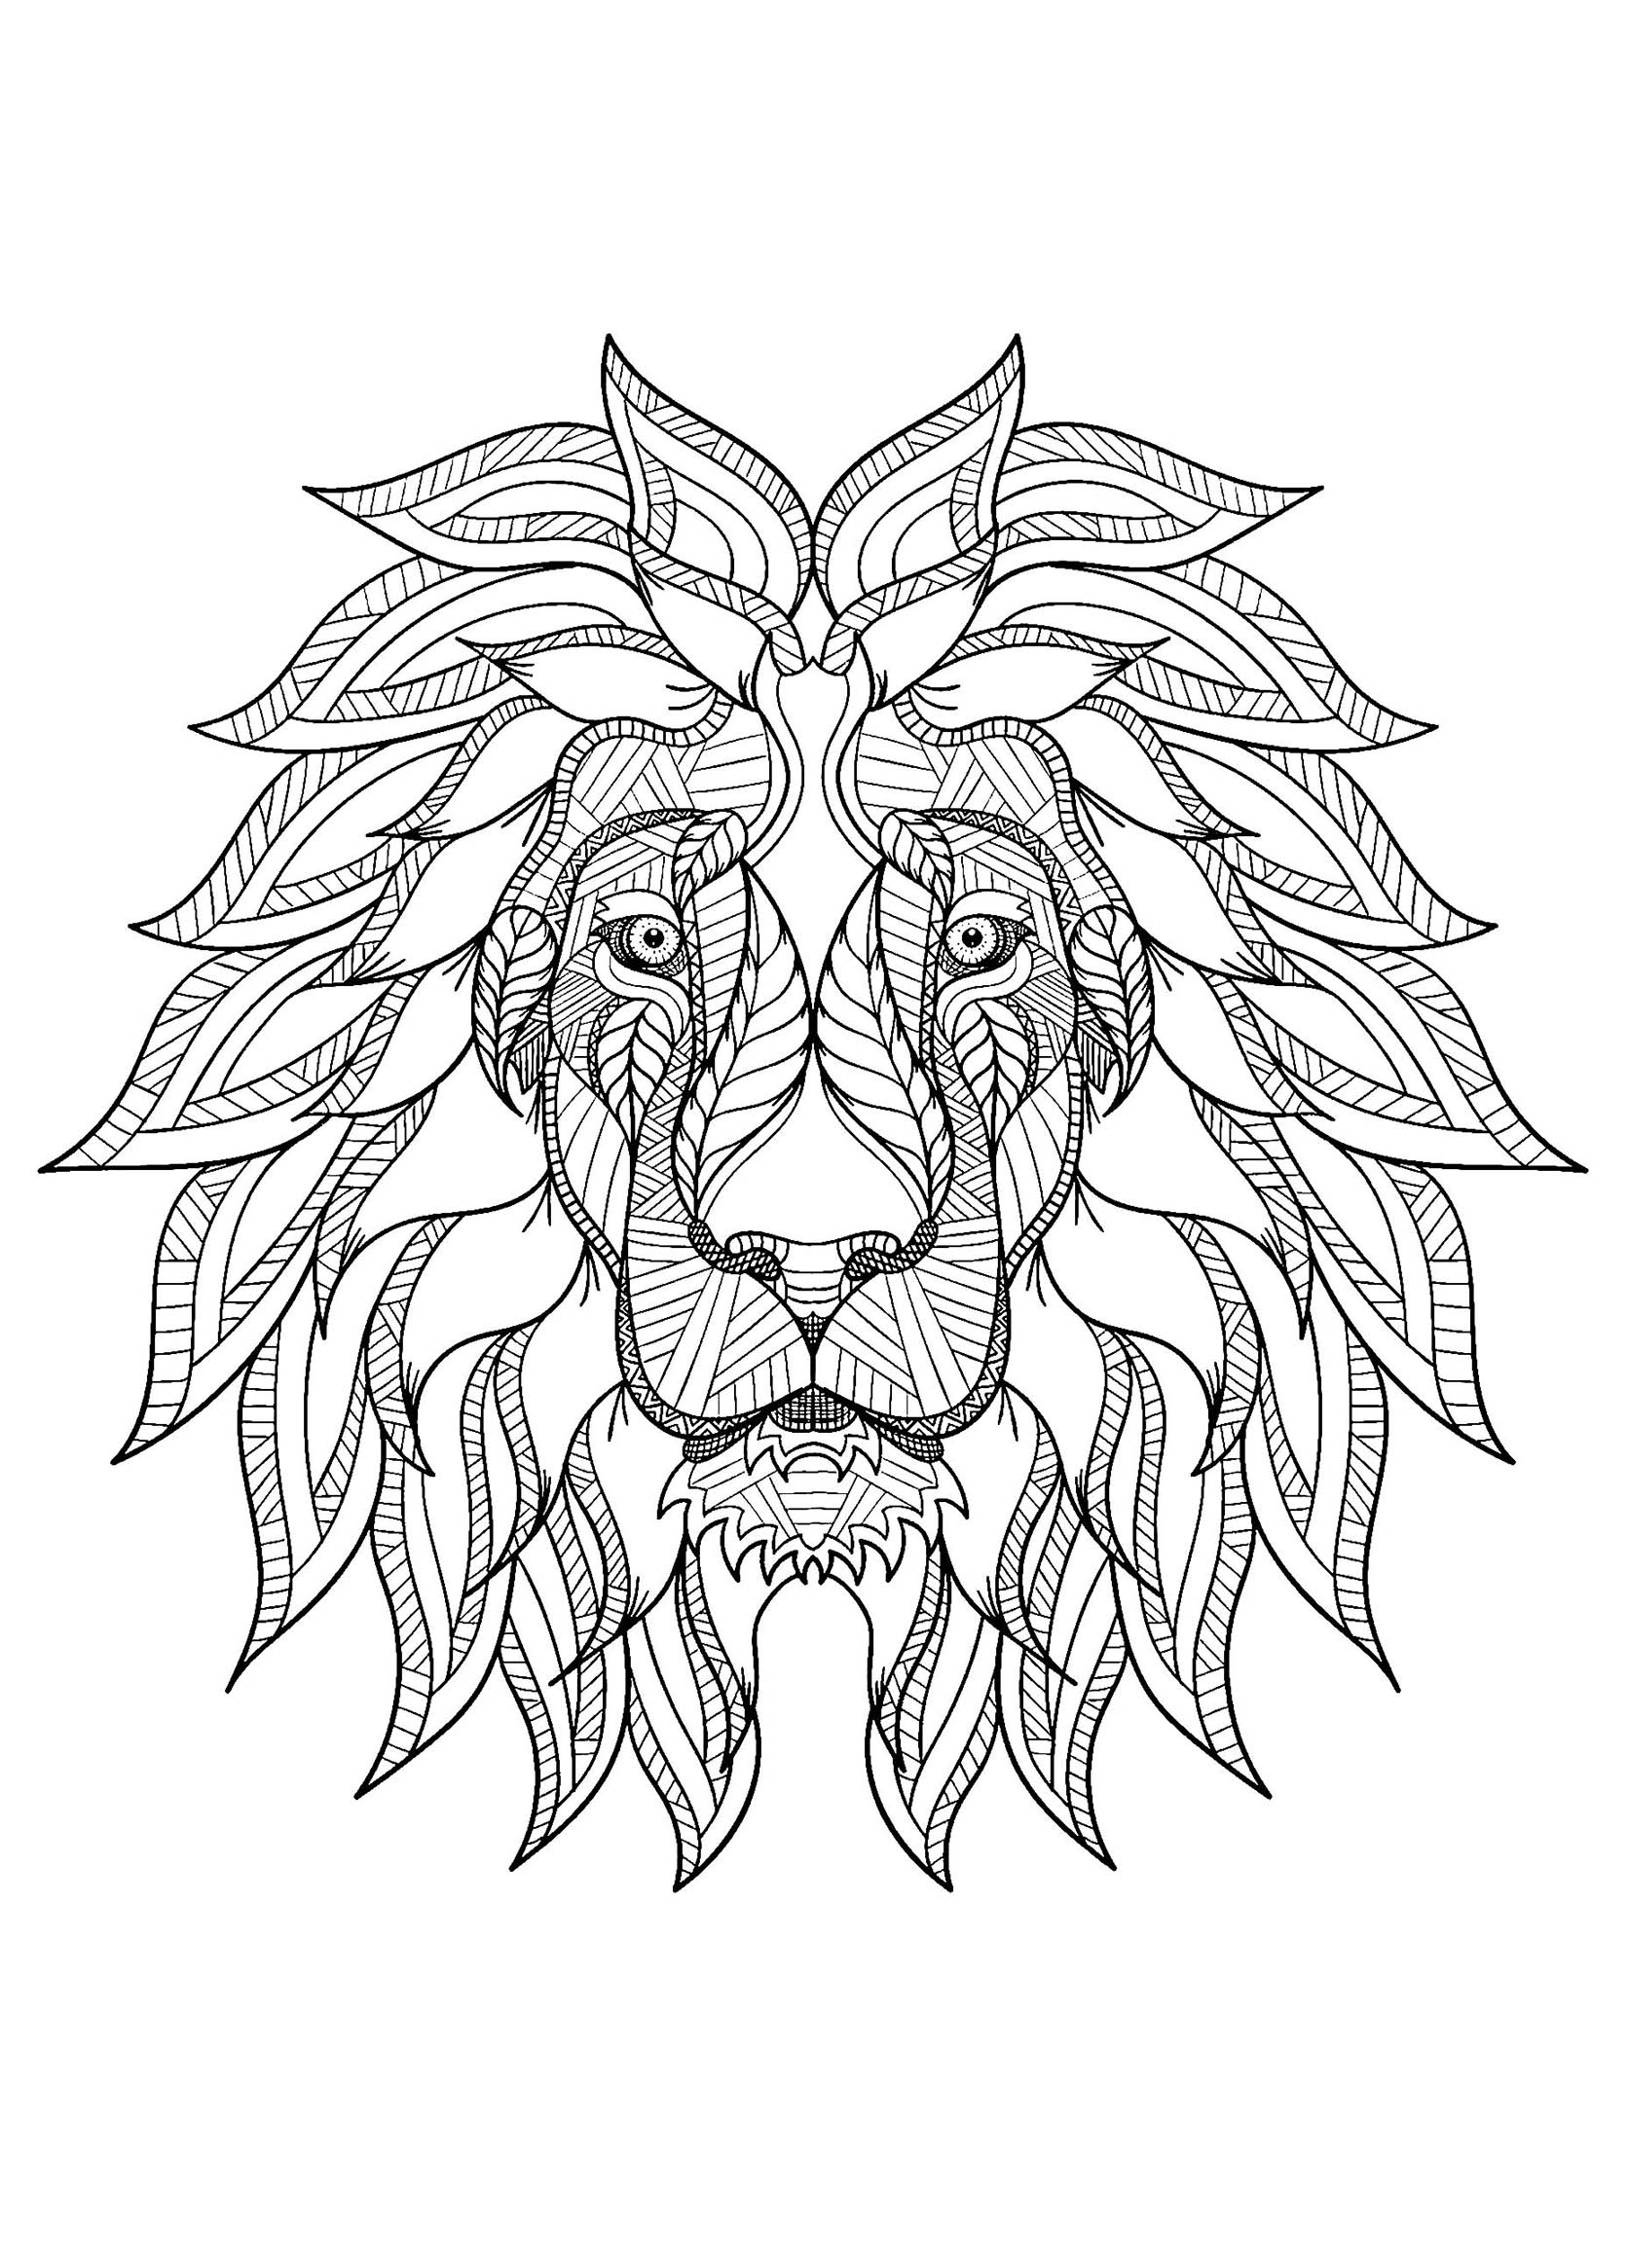 coloring pages of lion fantasy lion printable adult coloring page from favoreads coloring pages of lion